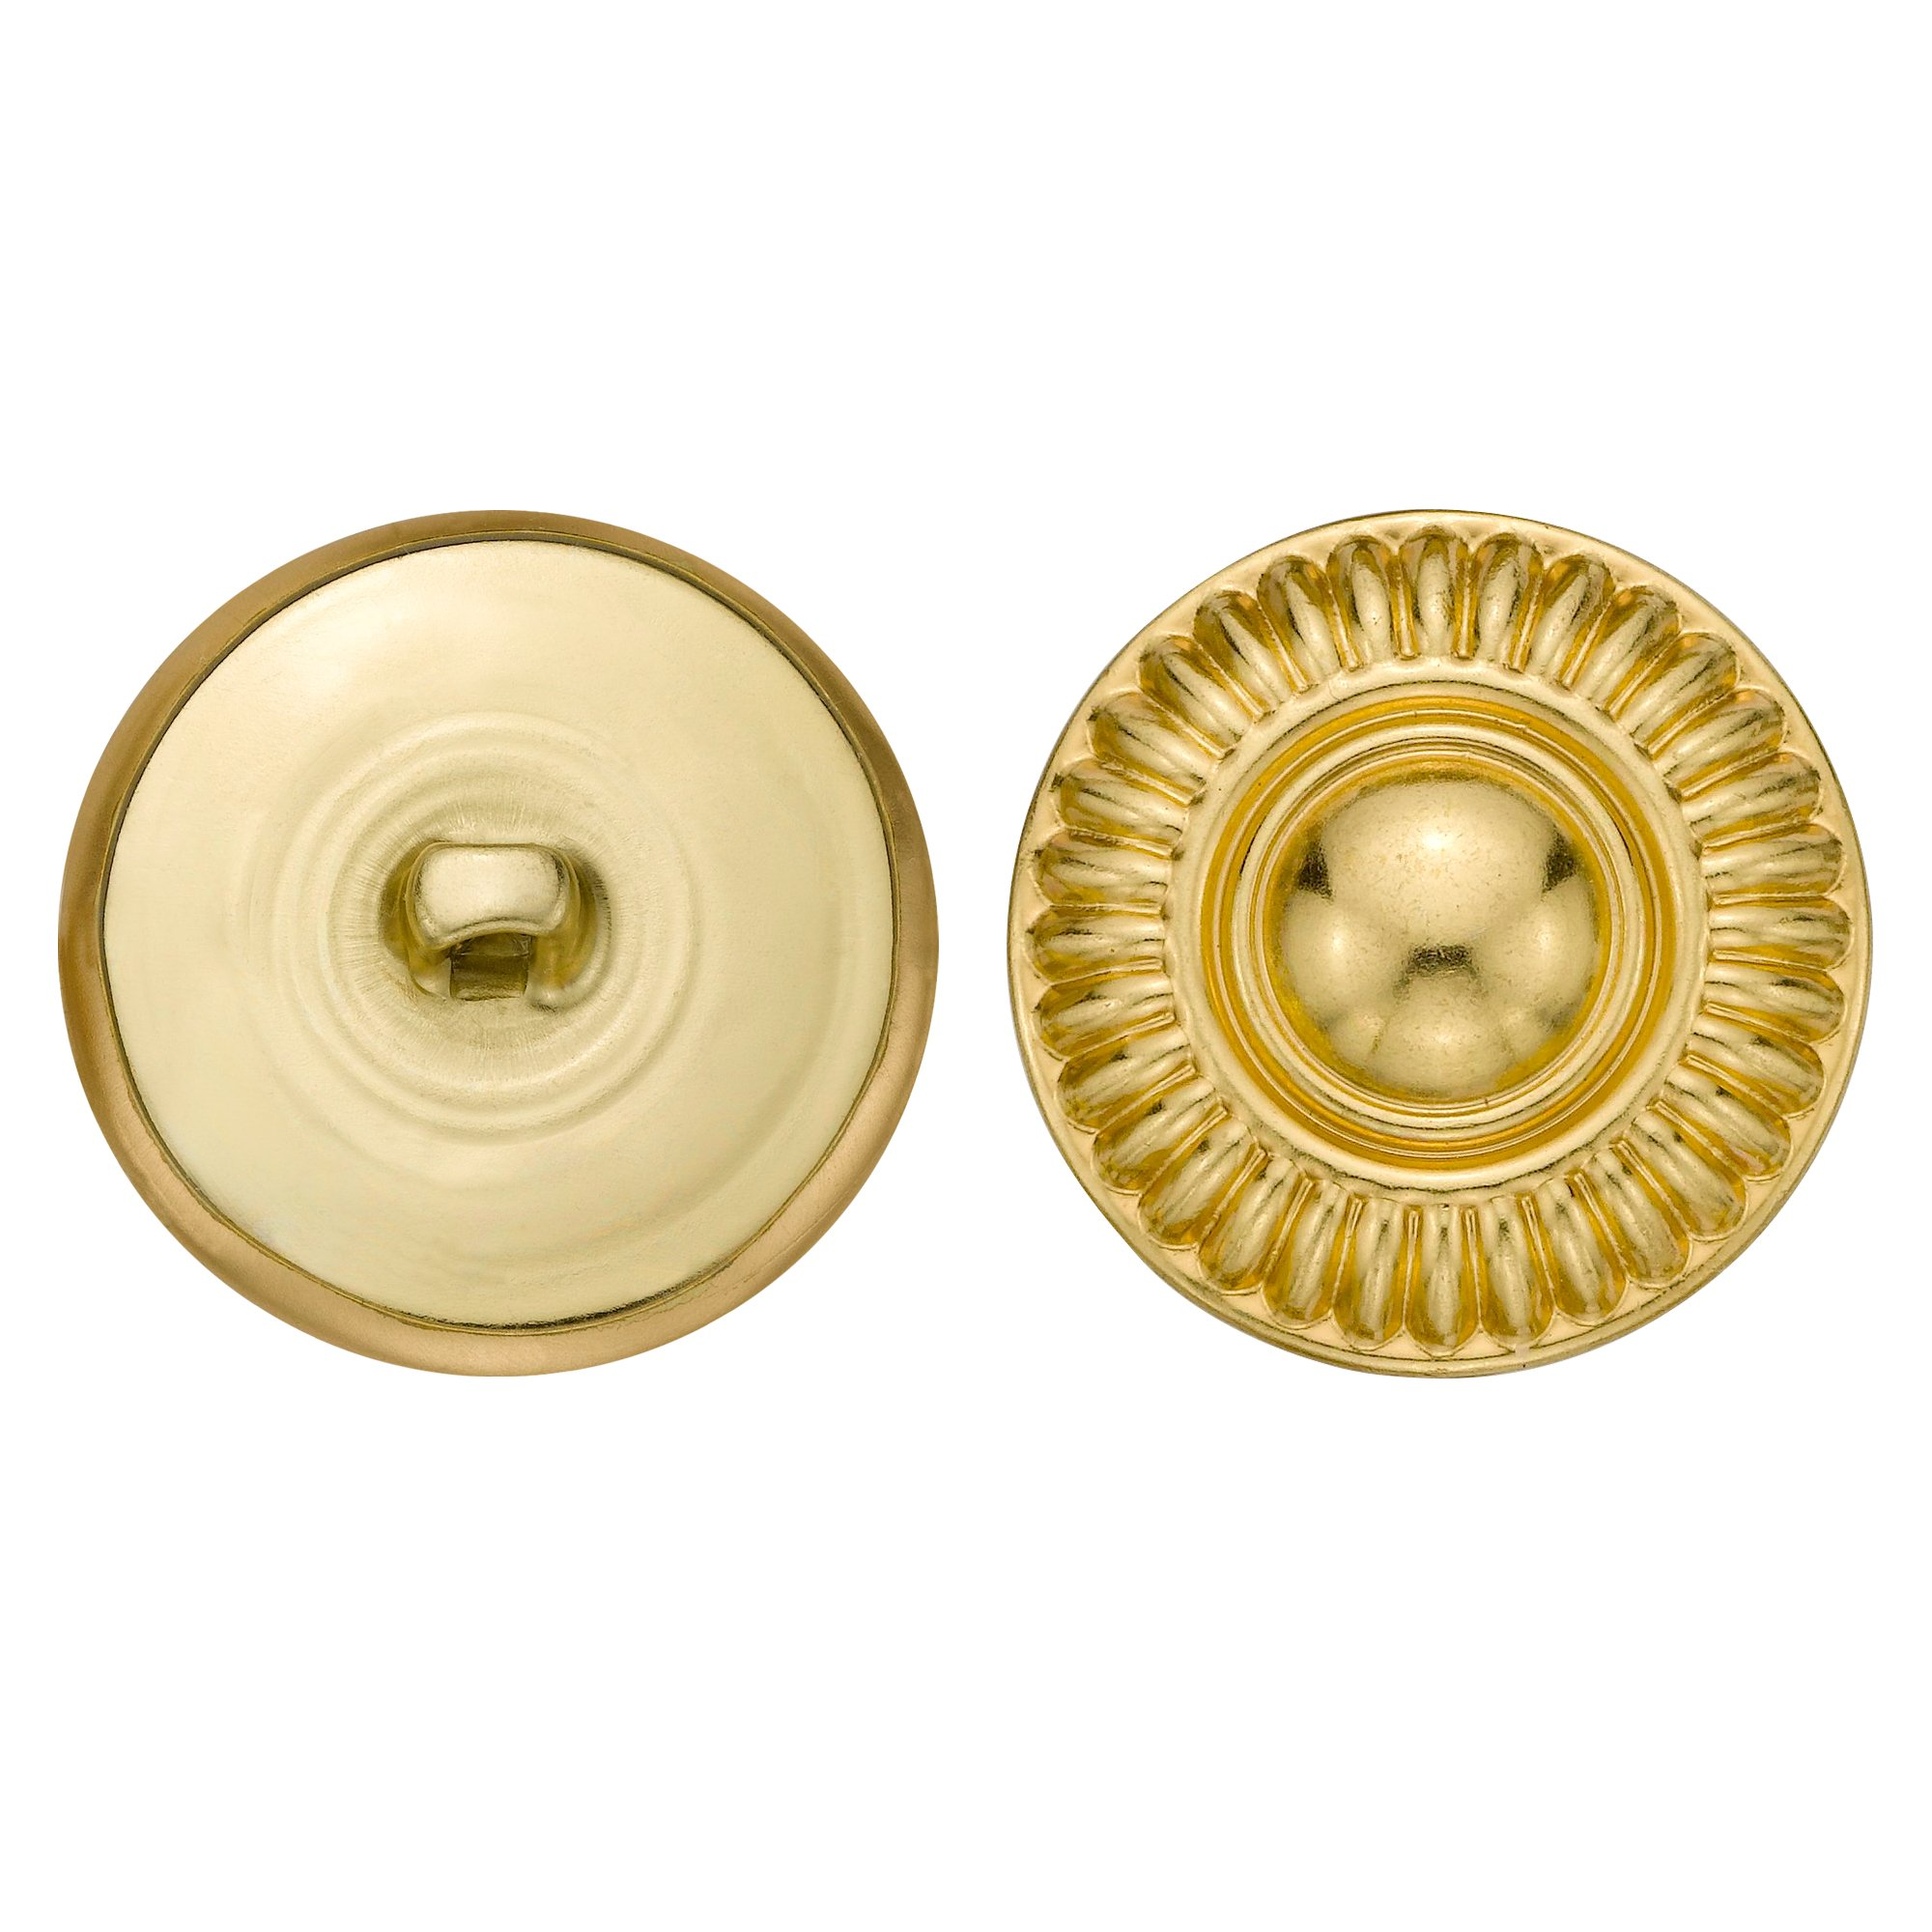 C&C Metal Products 5079 Modern Daisy Metal Button, Size 45 Ligne, Gold, 36-Pack